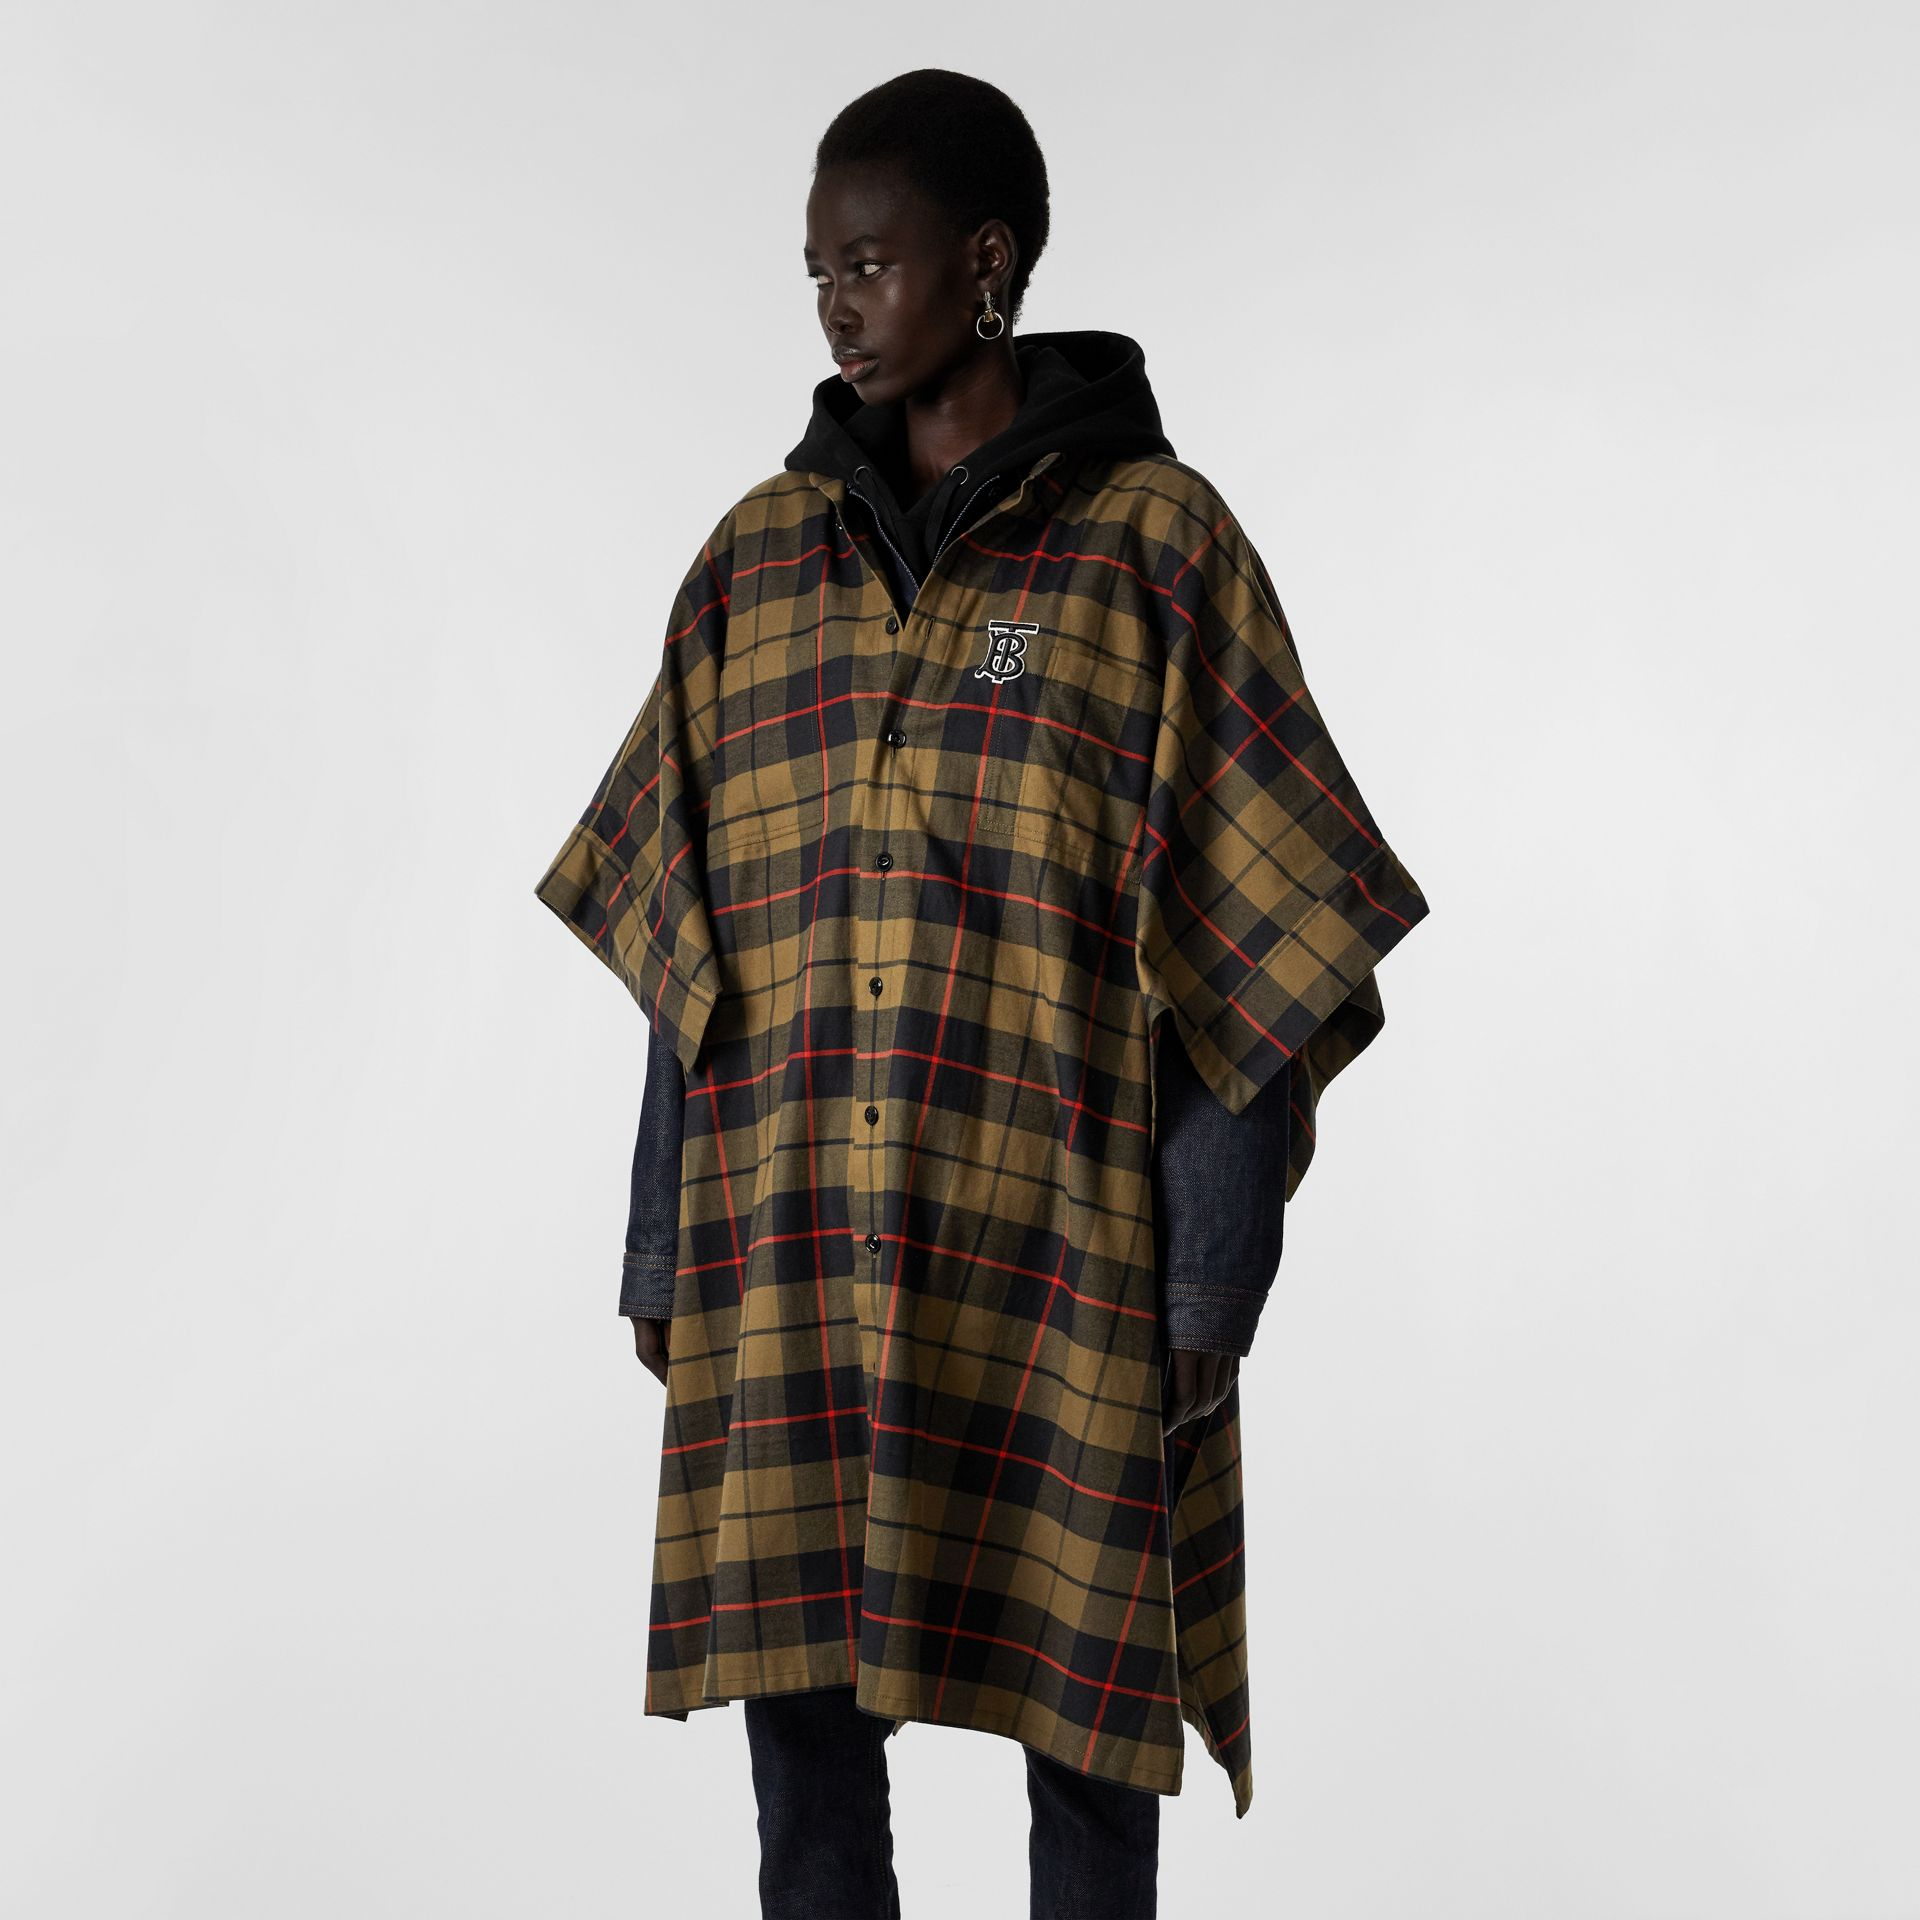 Monogram Motif Check Cotton Oversized Poncho in Military Olive | Burberry - gallery image 5